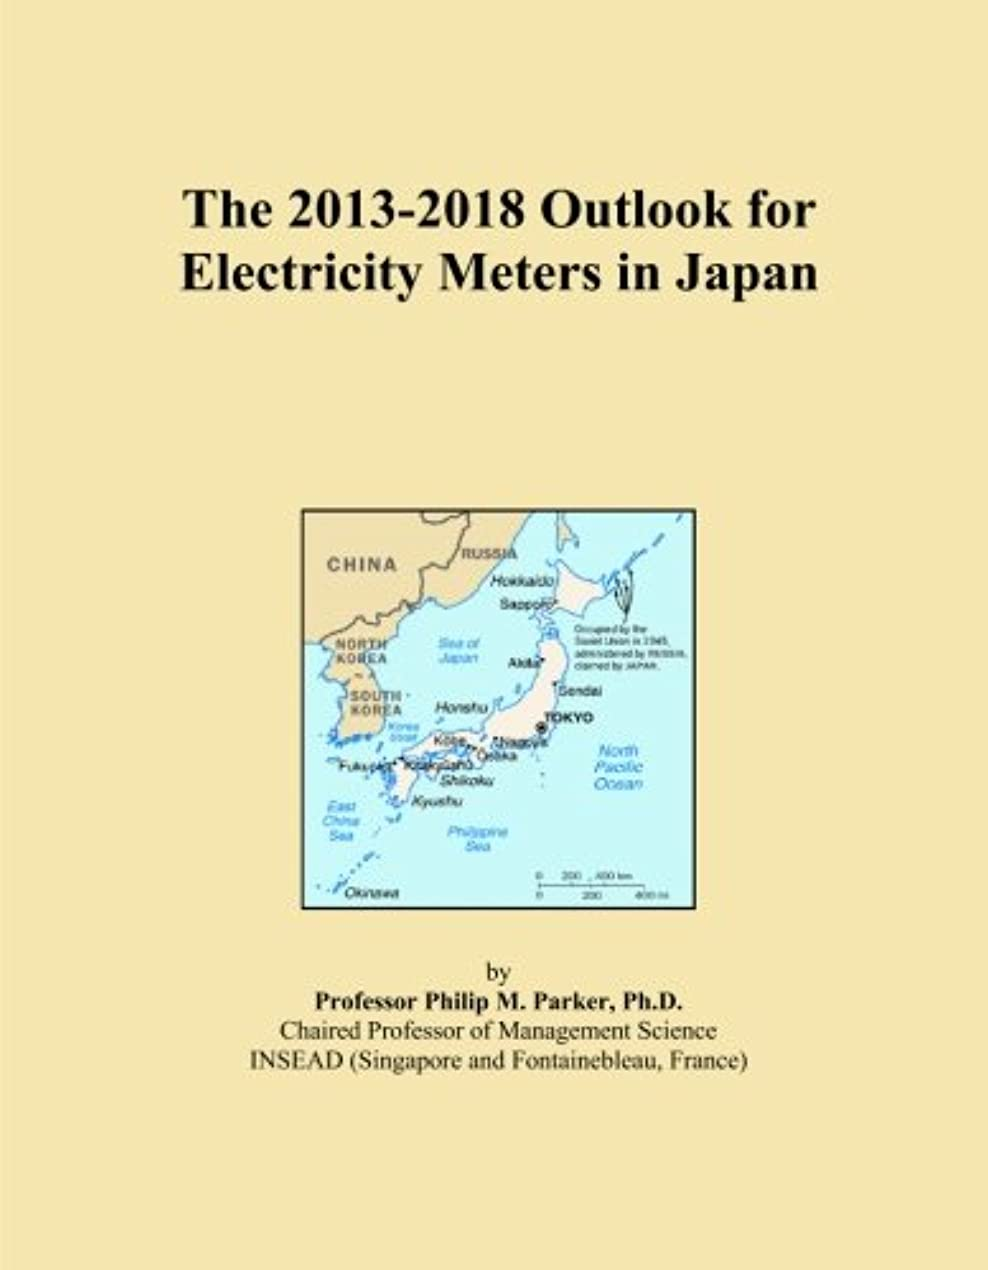 The 2013-2018 Outlook for Electricity Meters in Japan